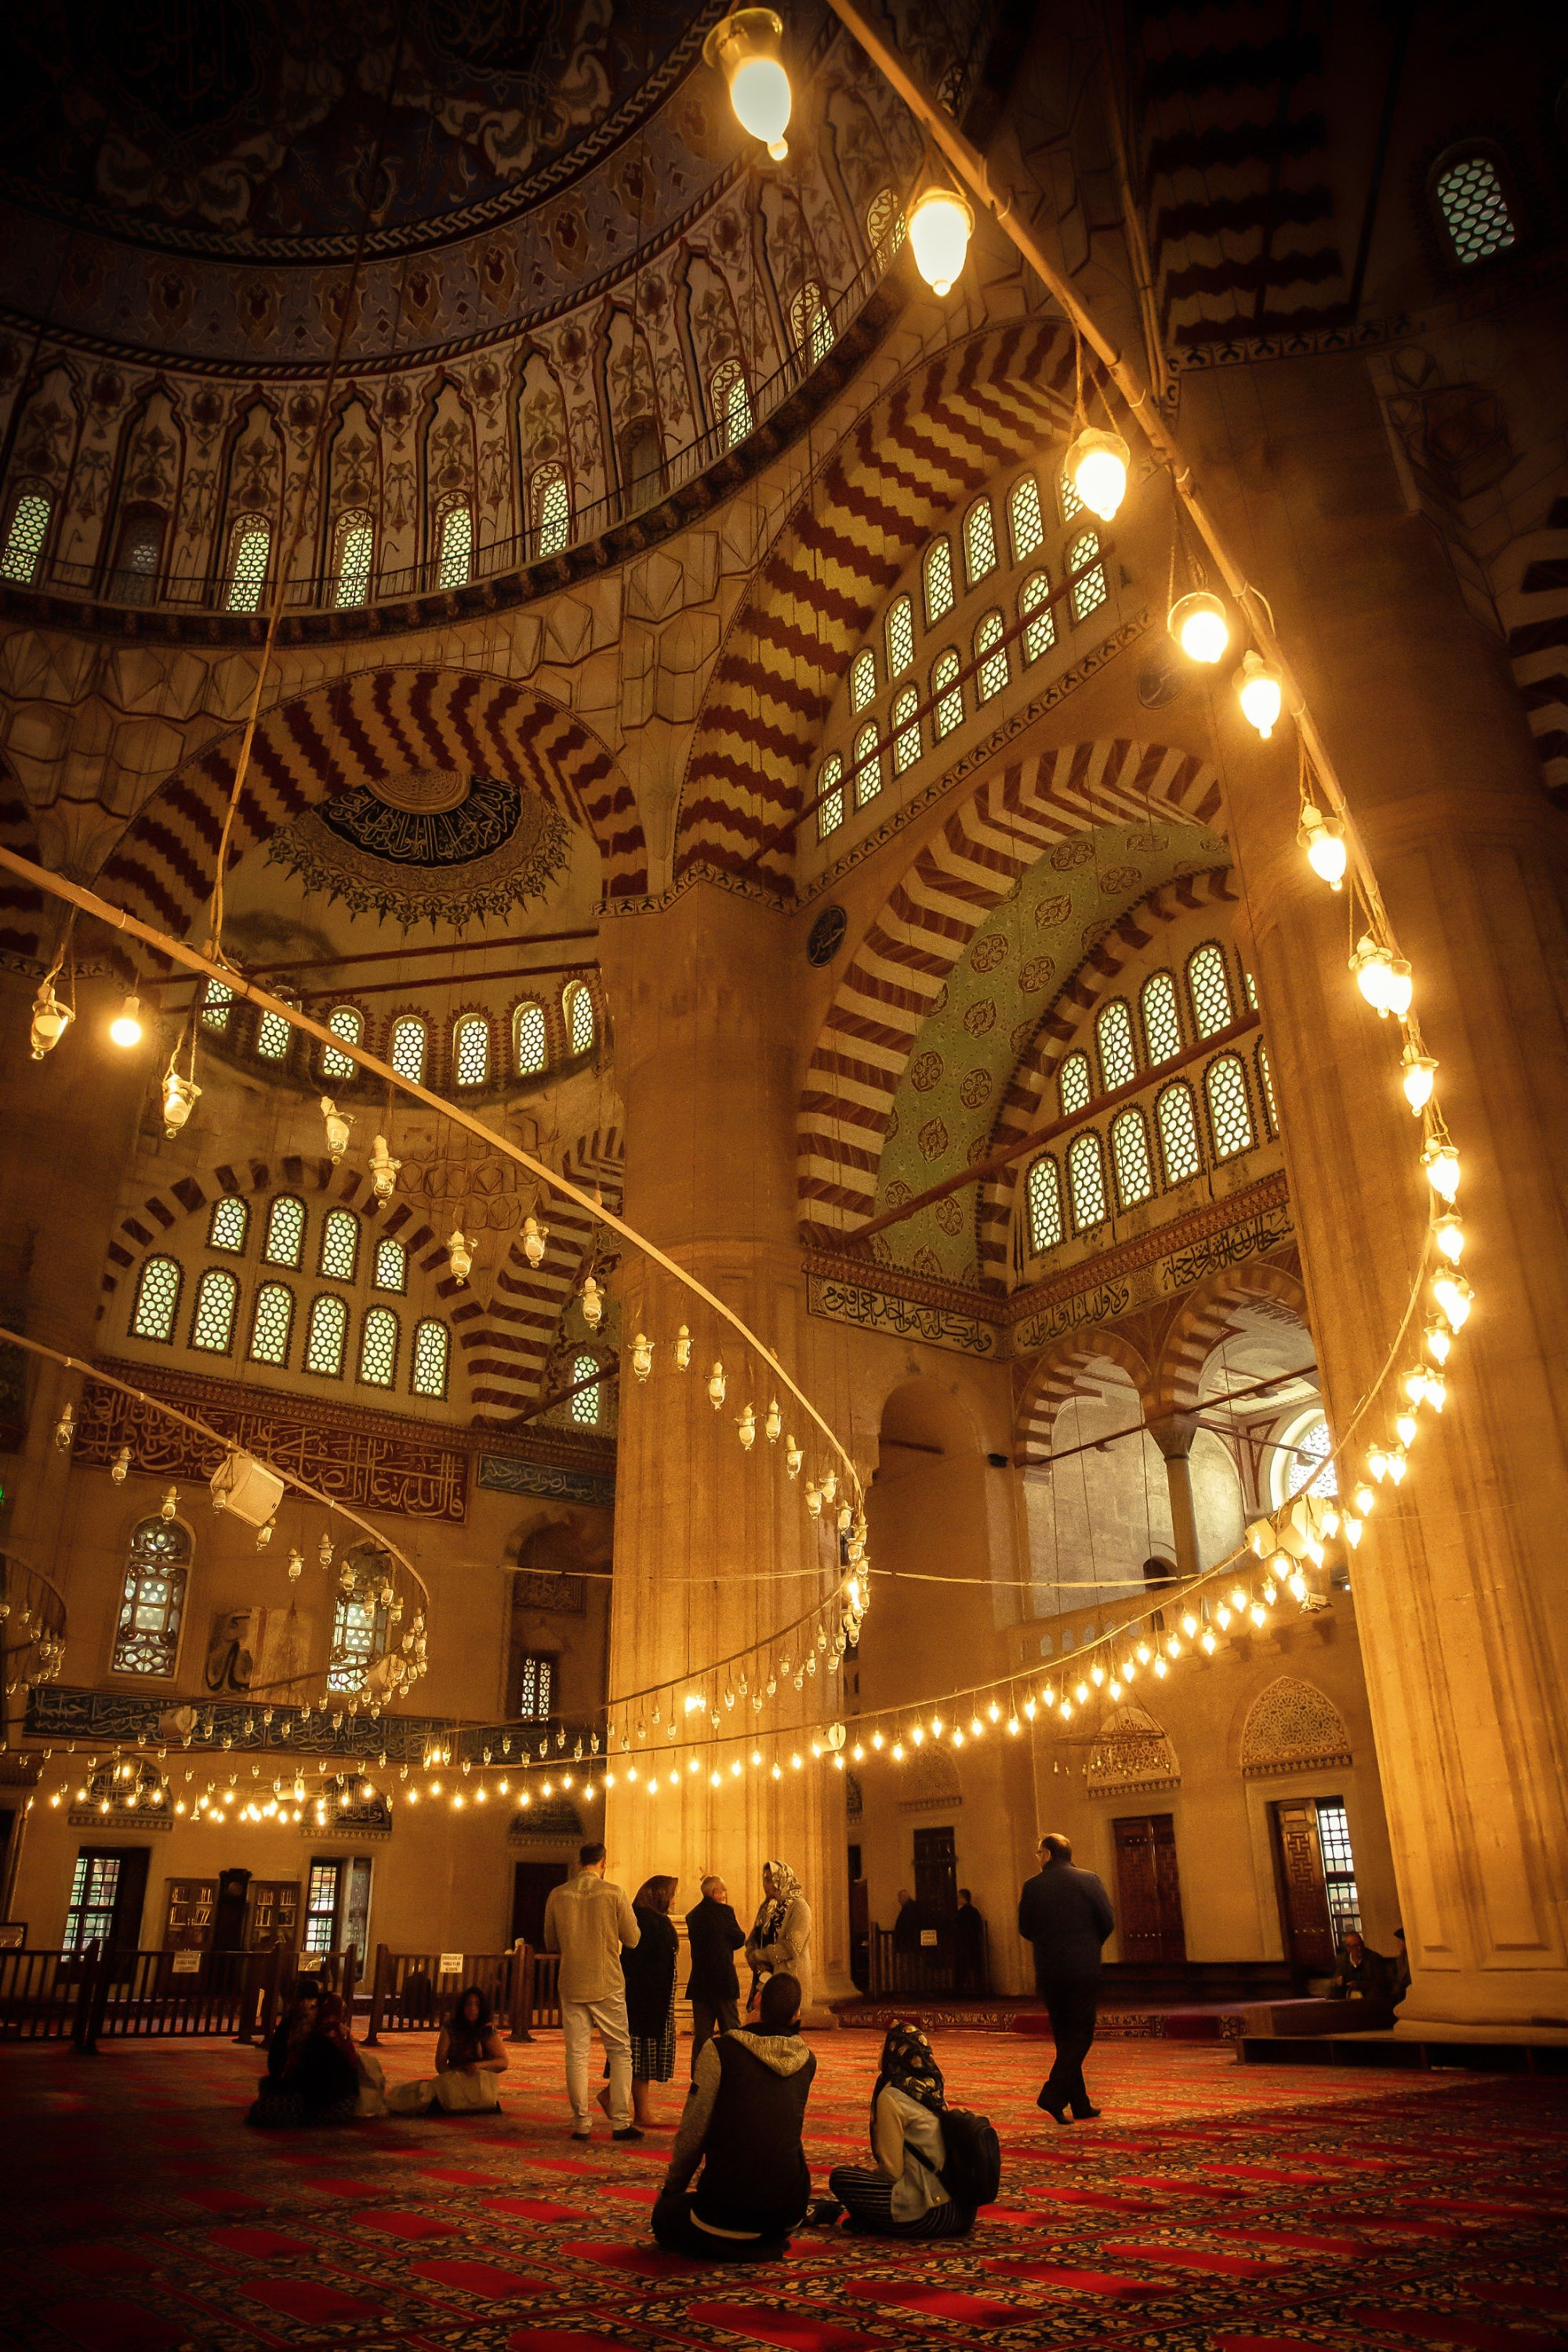 People pray at the Selimiye Mosque during the holy month of Ramadan, in Edirne, Turkey, May 14, 2019. (Shutterstock Photo)